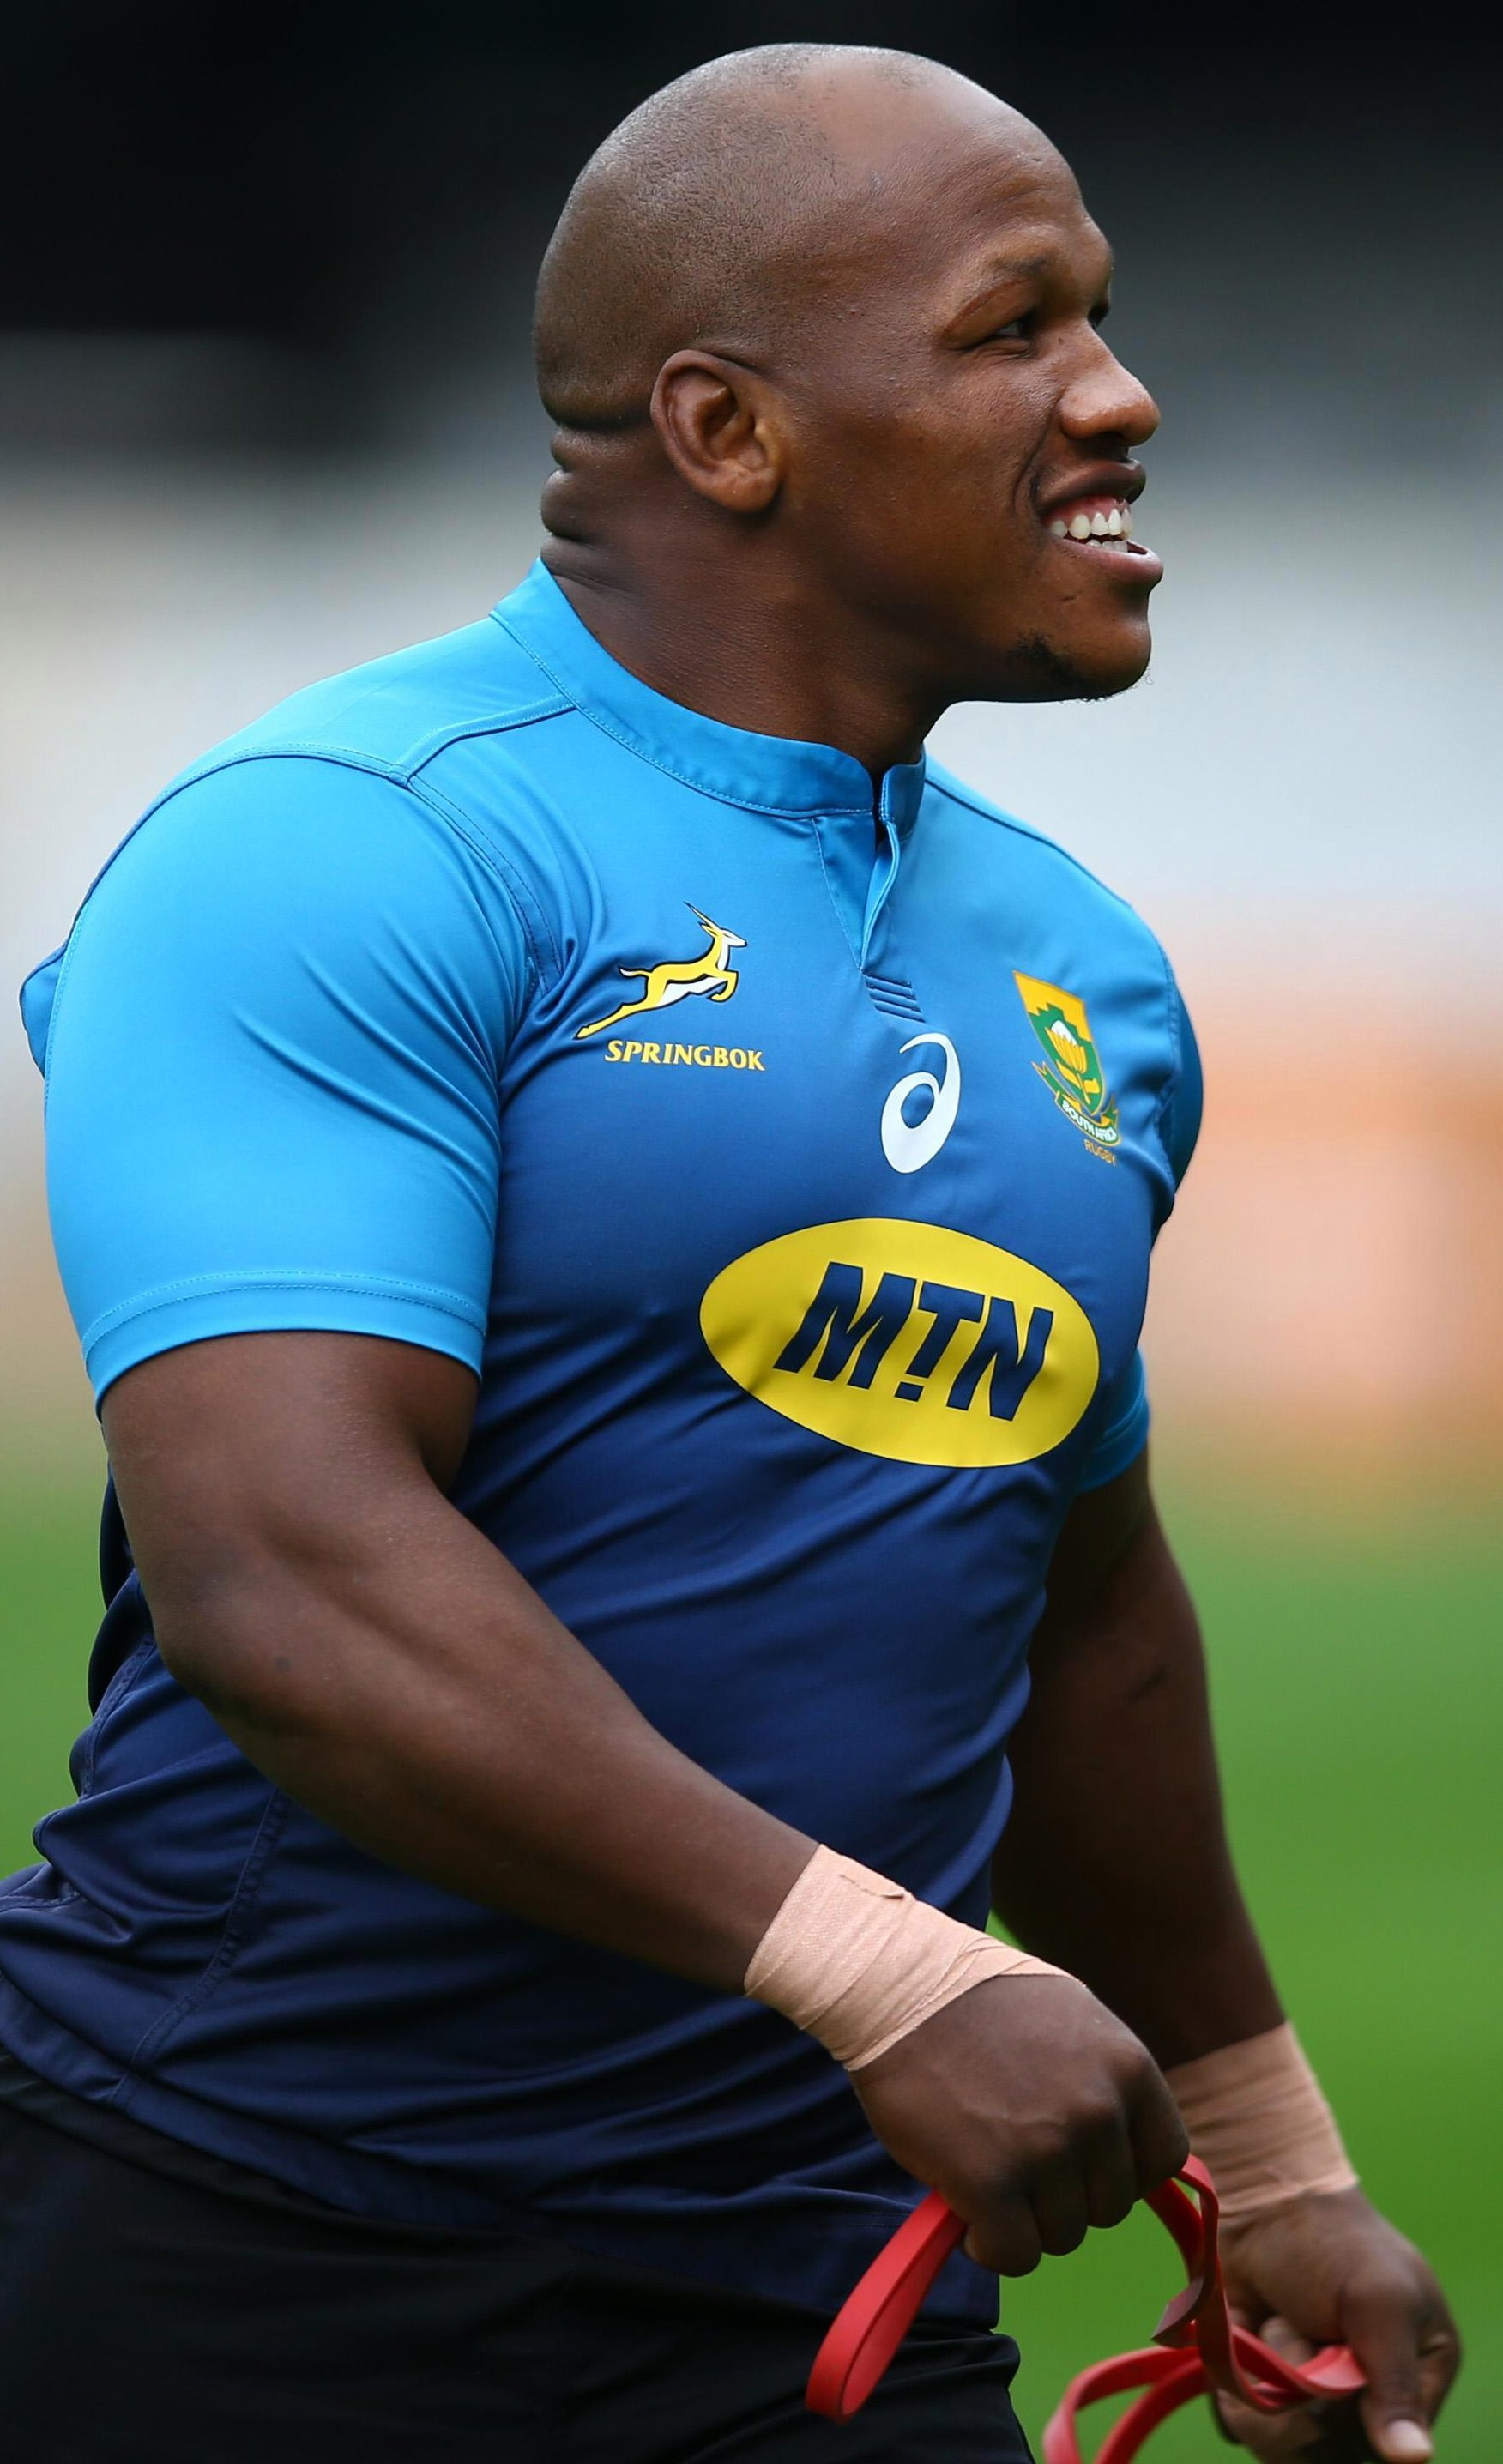 Bongi Mbonambi will also face the Wallabies in Brisbane